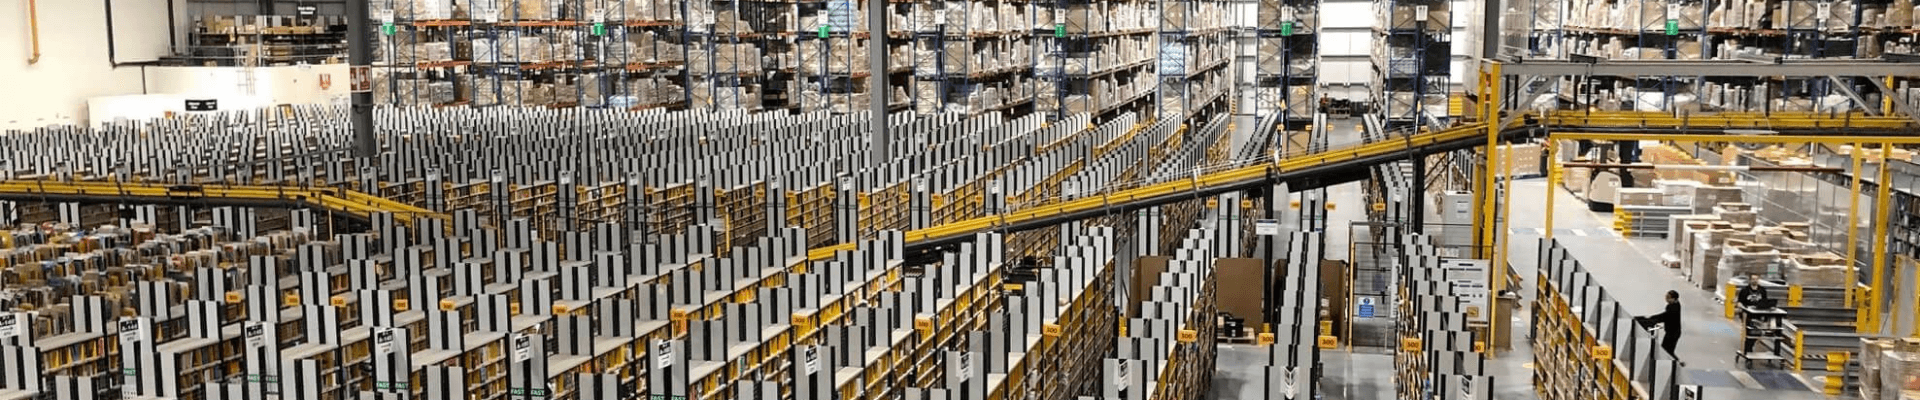 fba amazon UK, selling with amazon, third party logistics, best fulfillment companies, fba, 3pl costs,